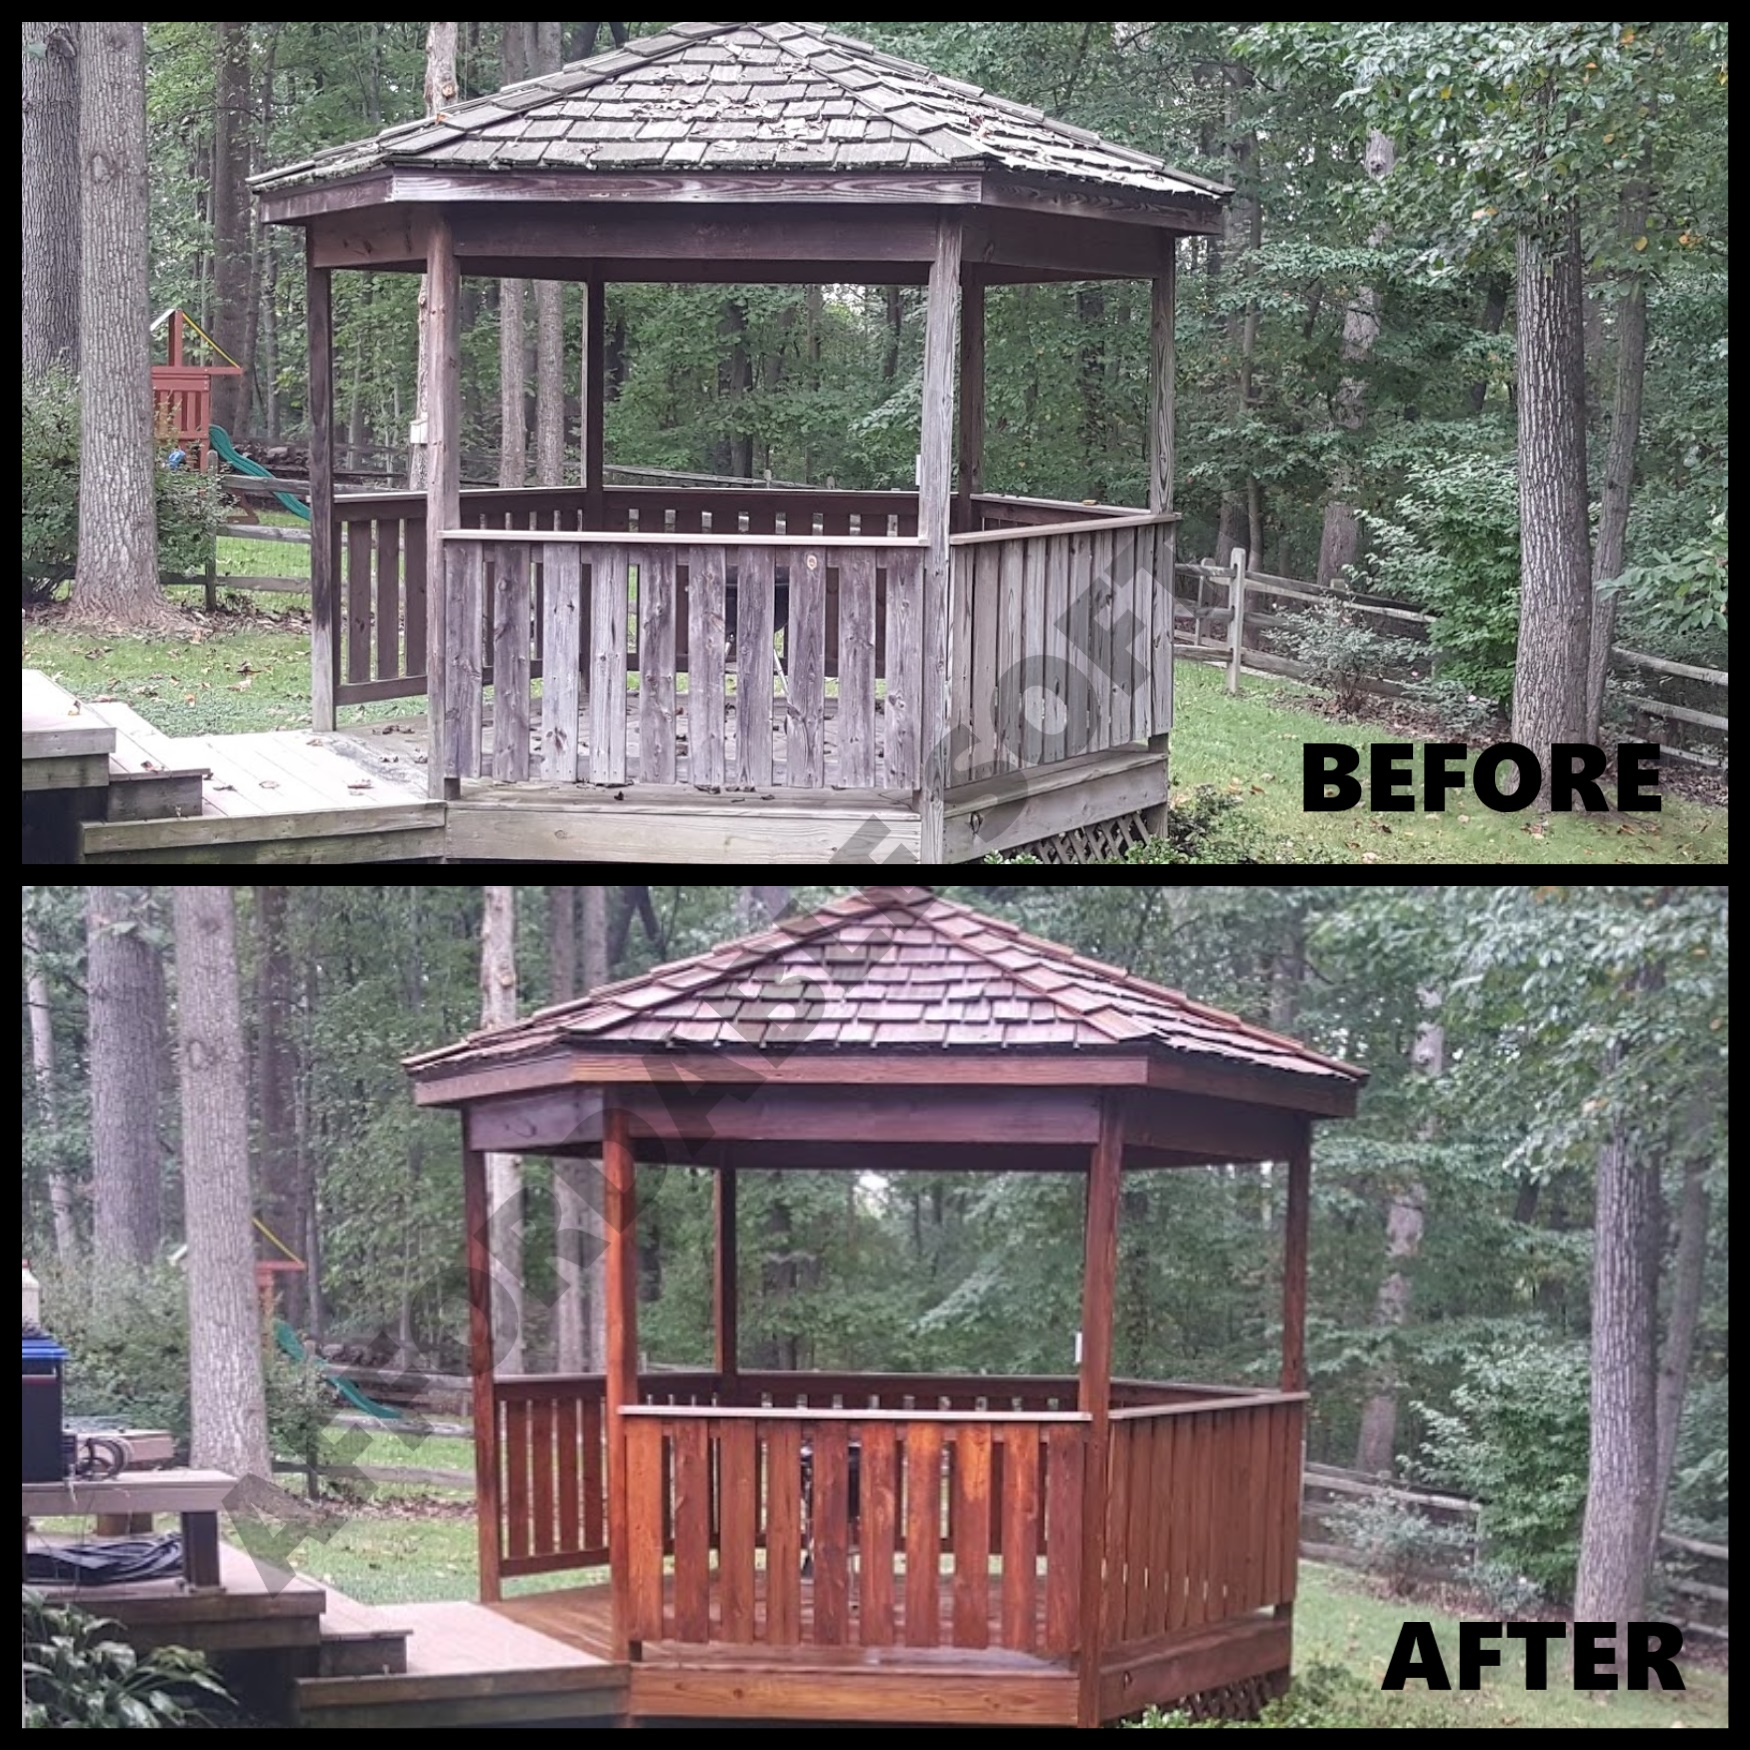 GAZEBO BEFORE AND AFTER.jpg